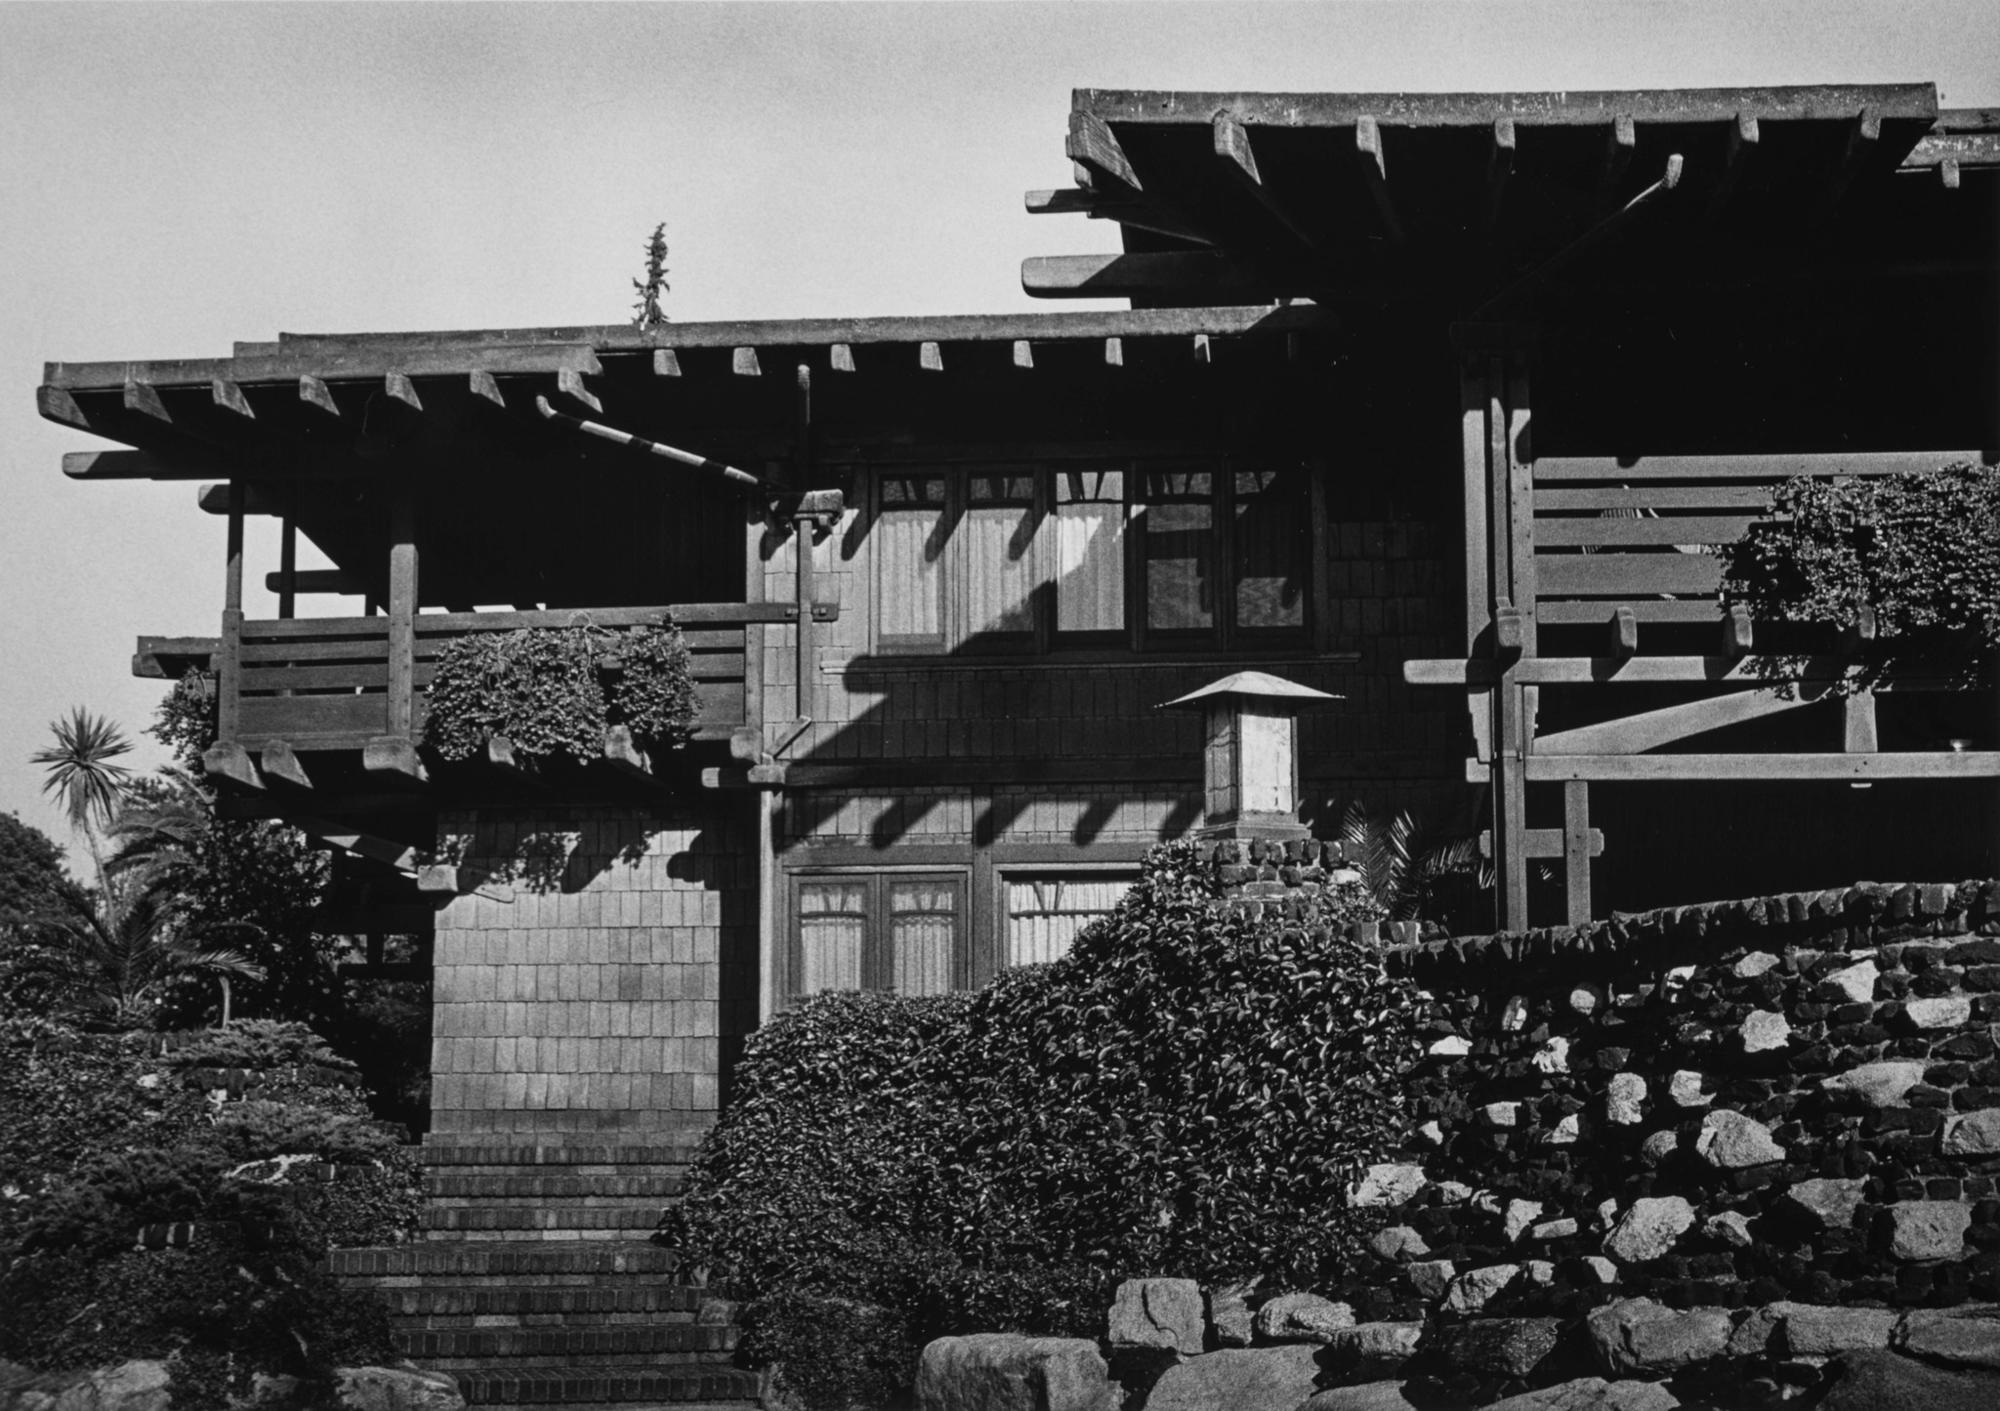 The Gamble House in Pasadena, west elevation, photographed by Yasuhiro Ishimoto, 1974, gelatin silver print.